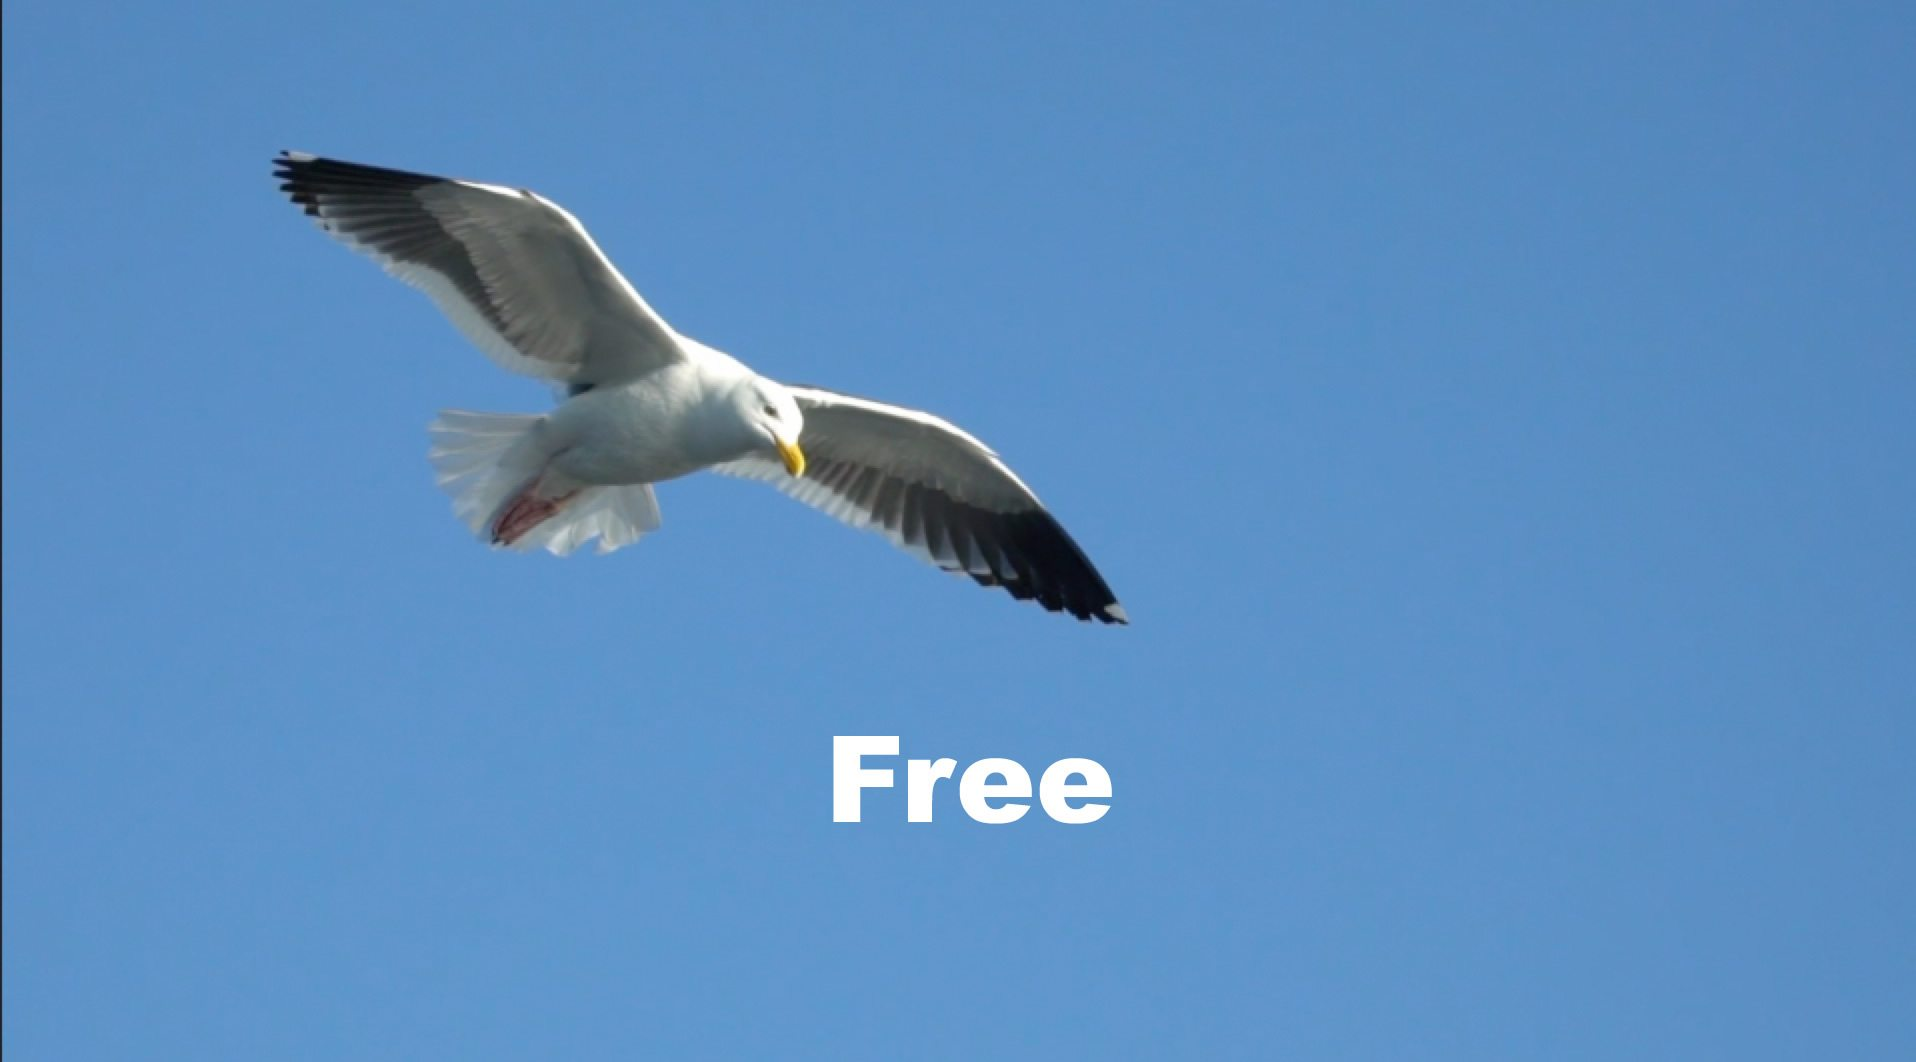 Bird in blue sky with text in white: Free. Link image to video for free days for Amanda Cadabra Book 1